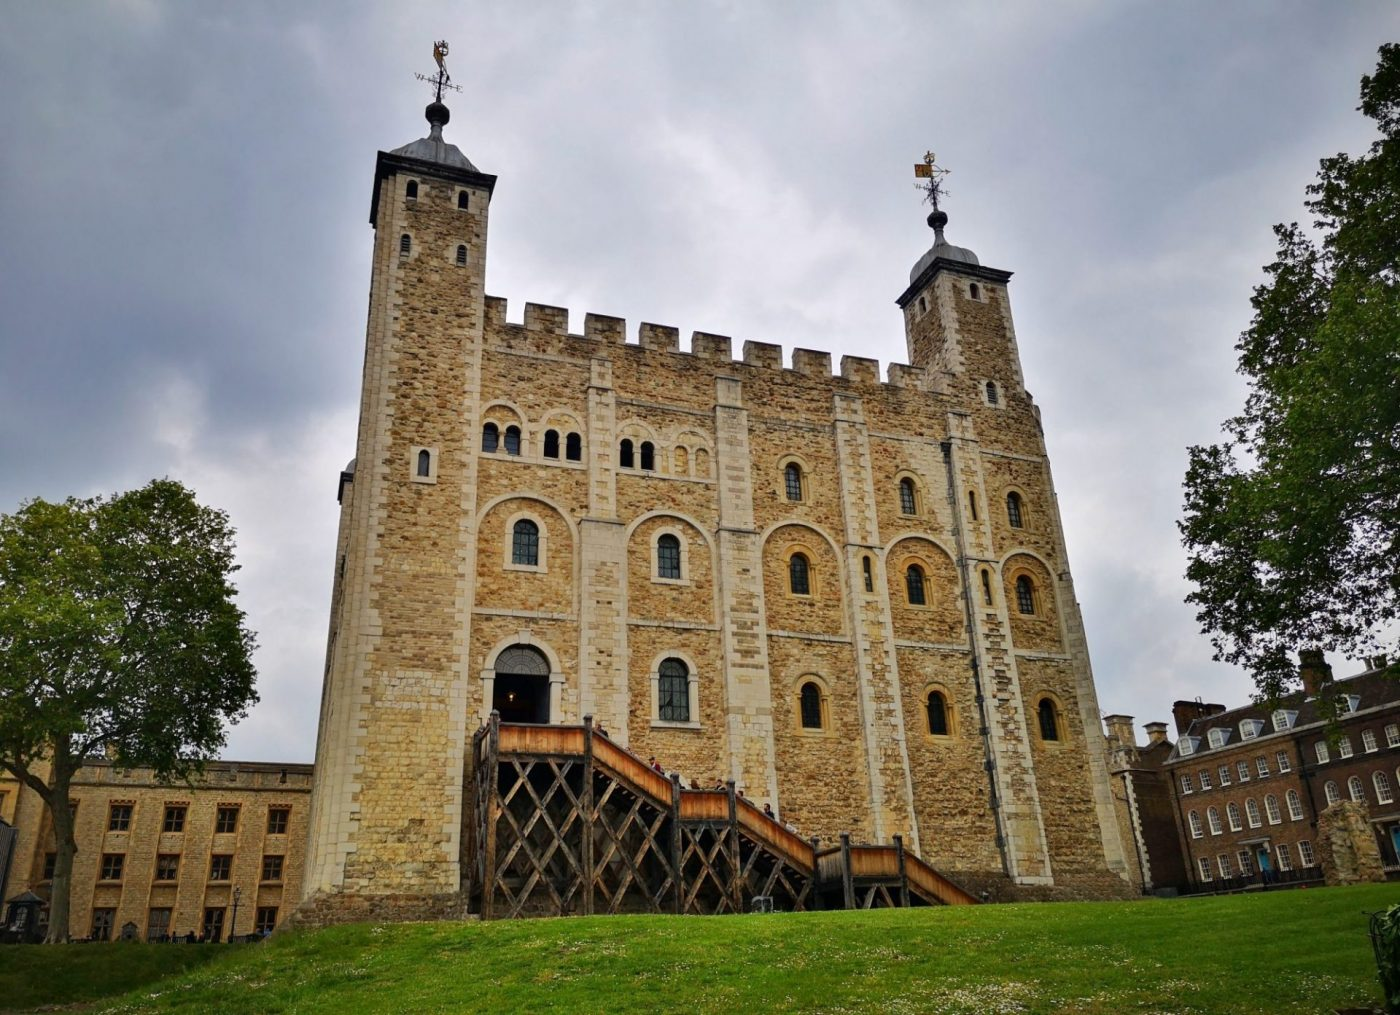 A Tower of London Beefeater Tour